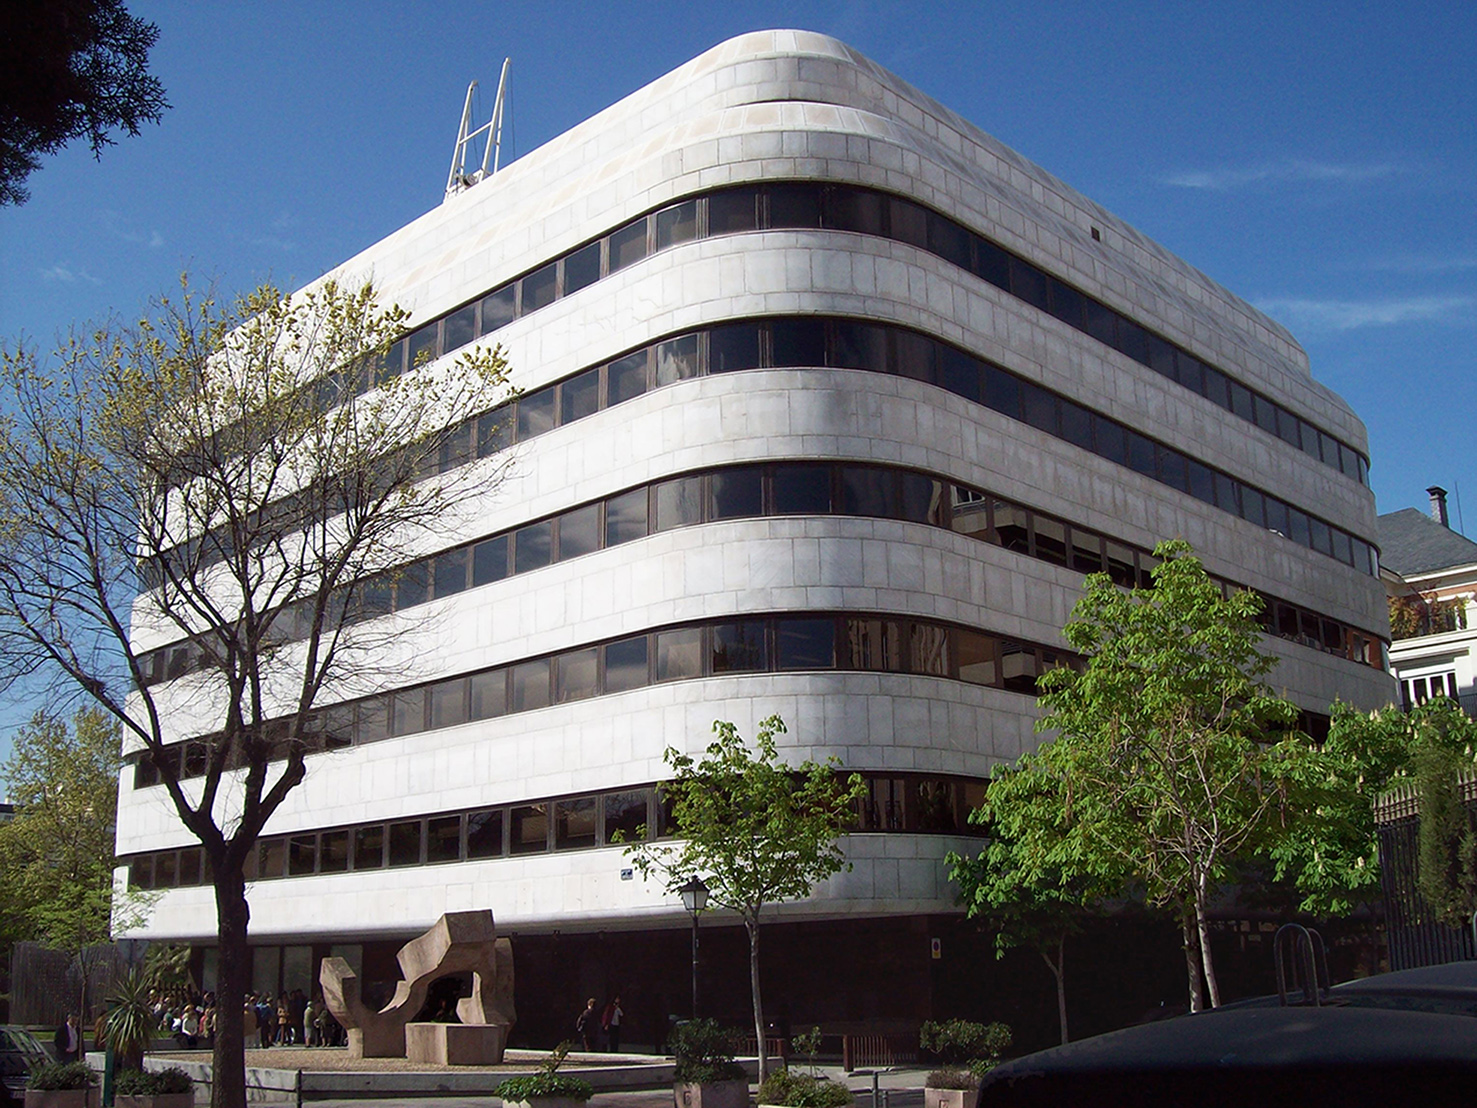 Headquarters of the Juan March Foundation, at 77 Calle de Castello (street) in Salamanca district in Madrid (Spain). Building from 1975.